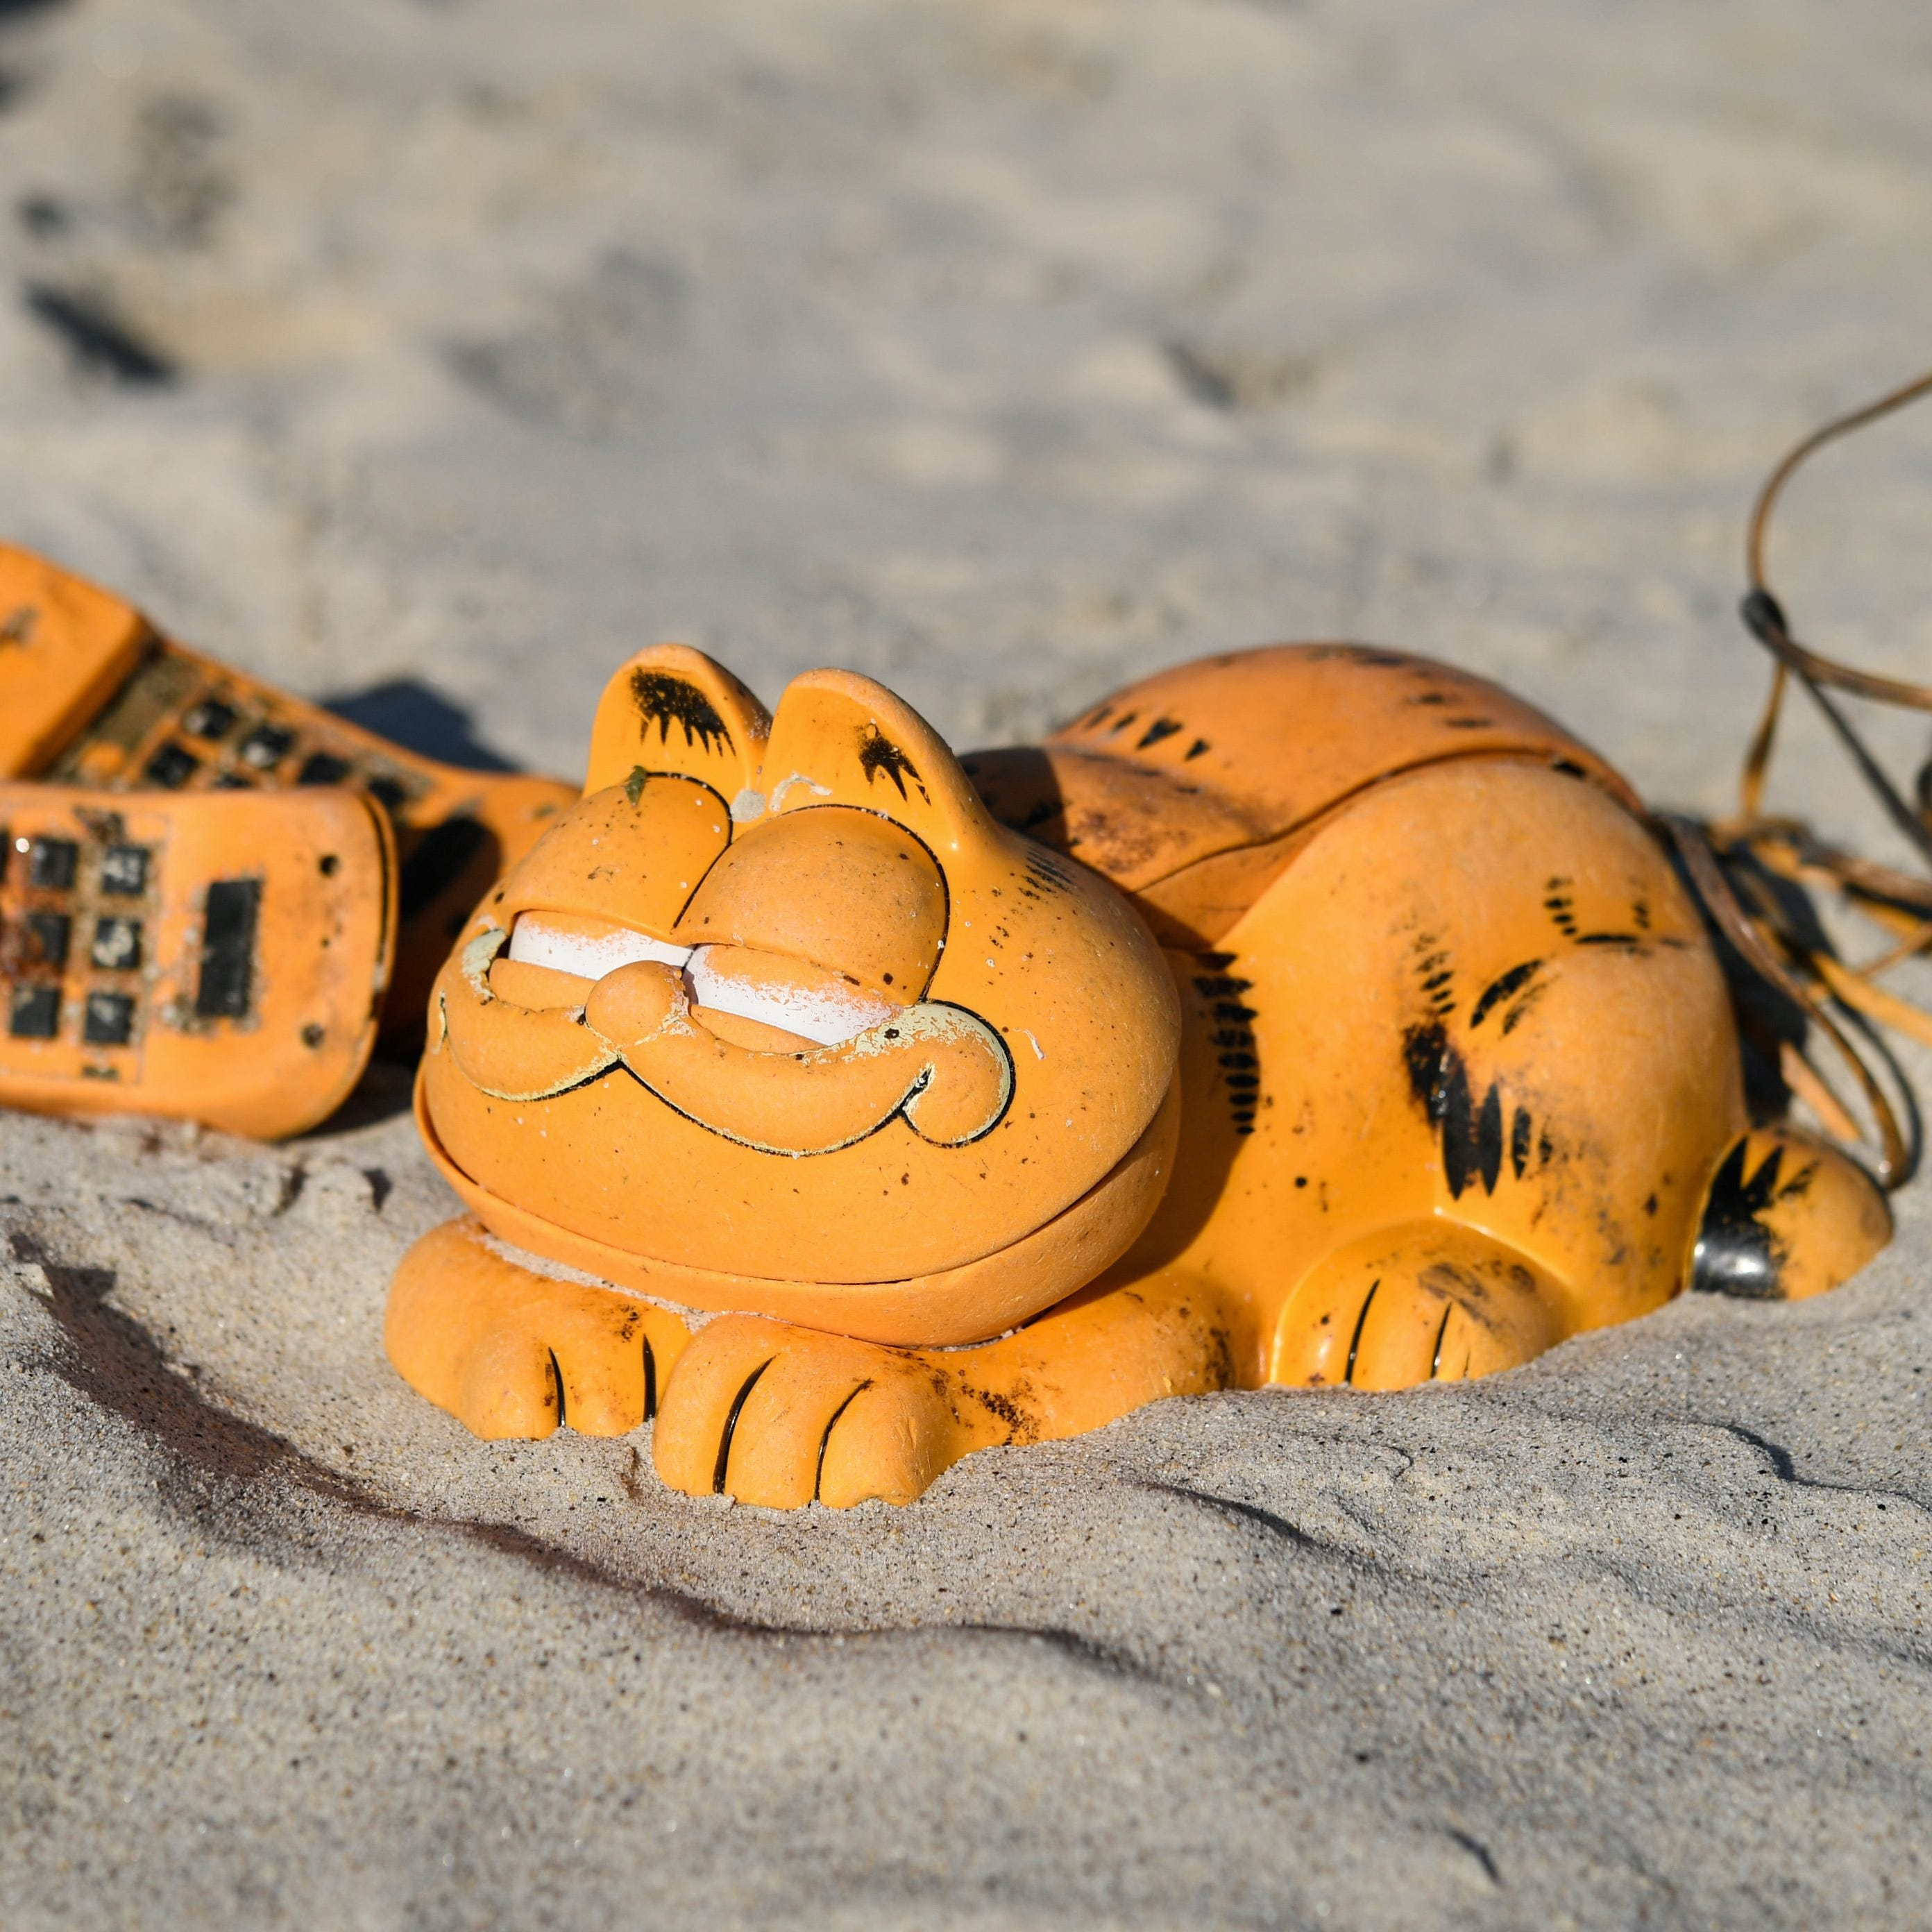 Telephones shaped like Garfield keep being found on French beaches. Now we know why.